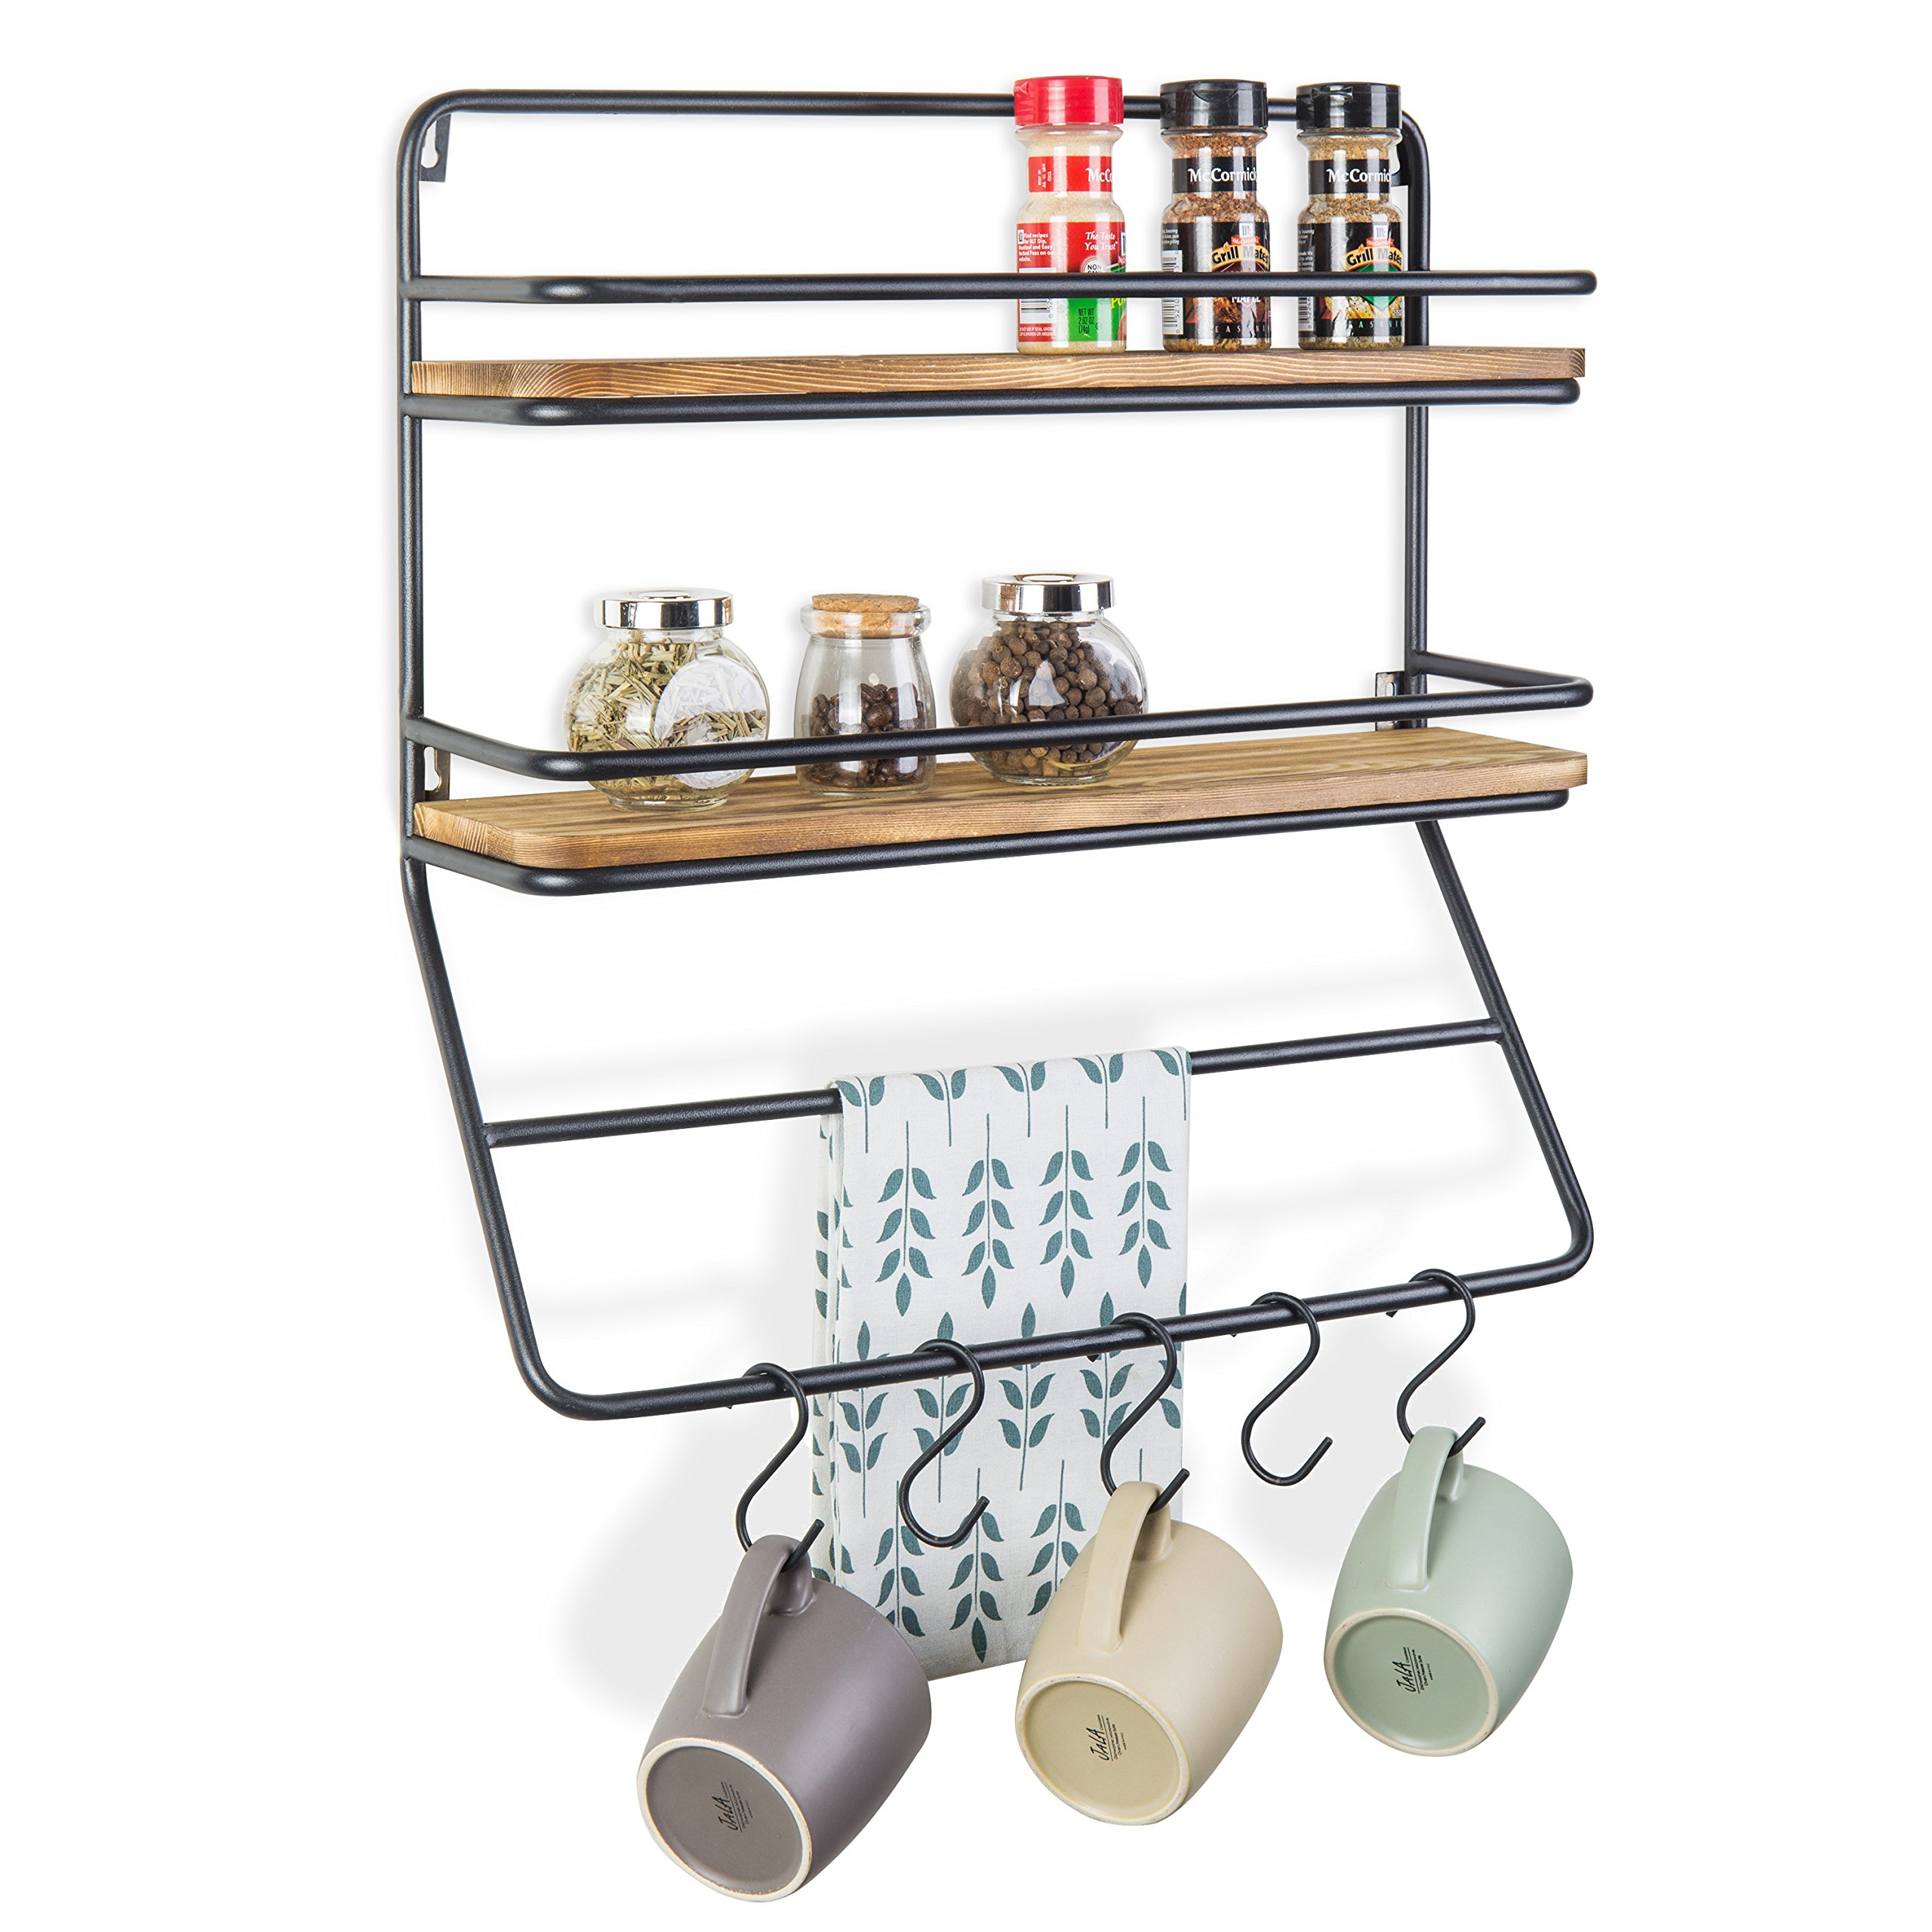 MyGift Wall-Mounted 2-Tier Shelf Rack with Towel Bar & 5 Removable S-Hooks